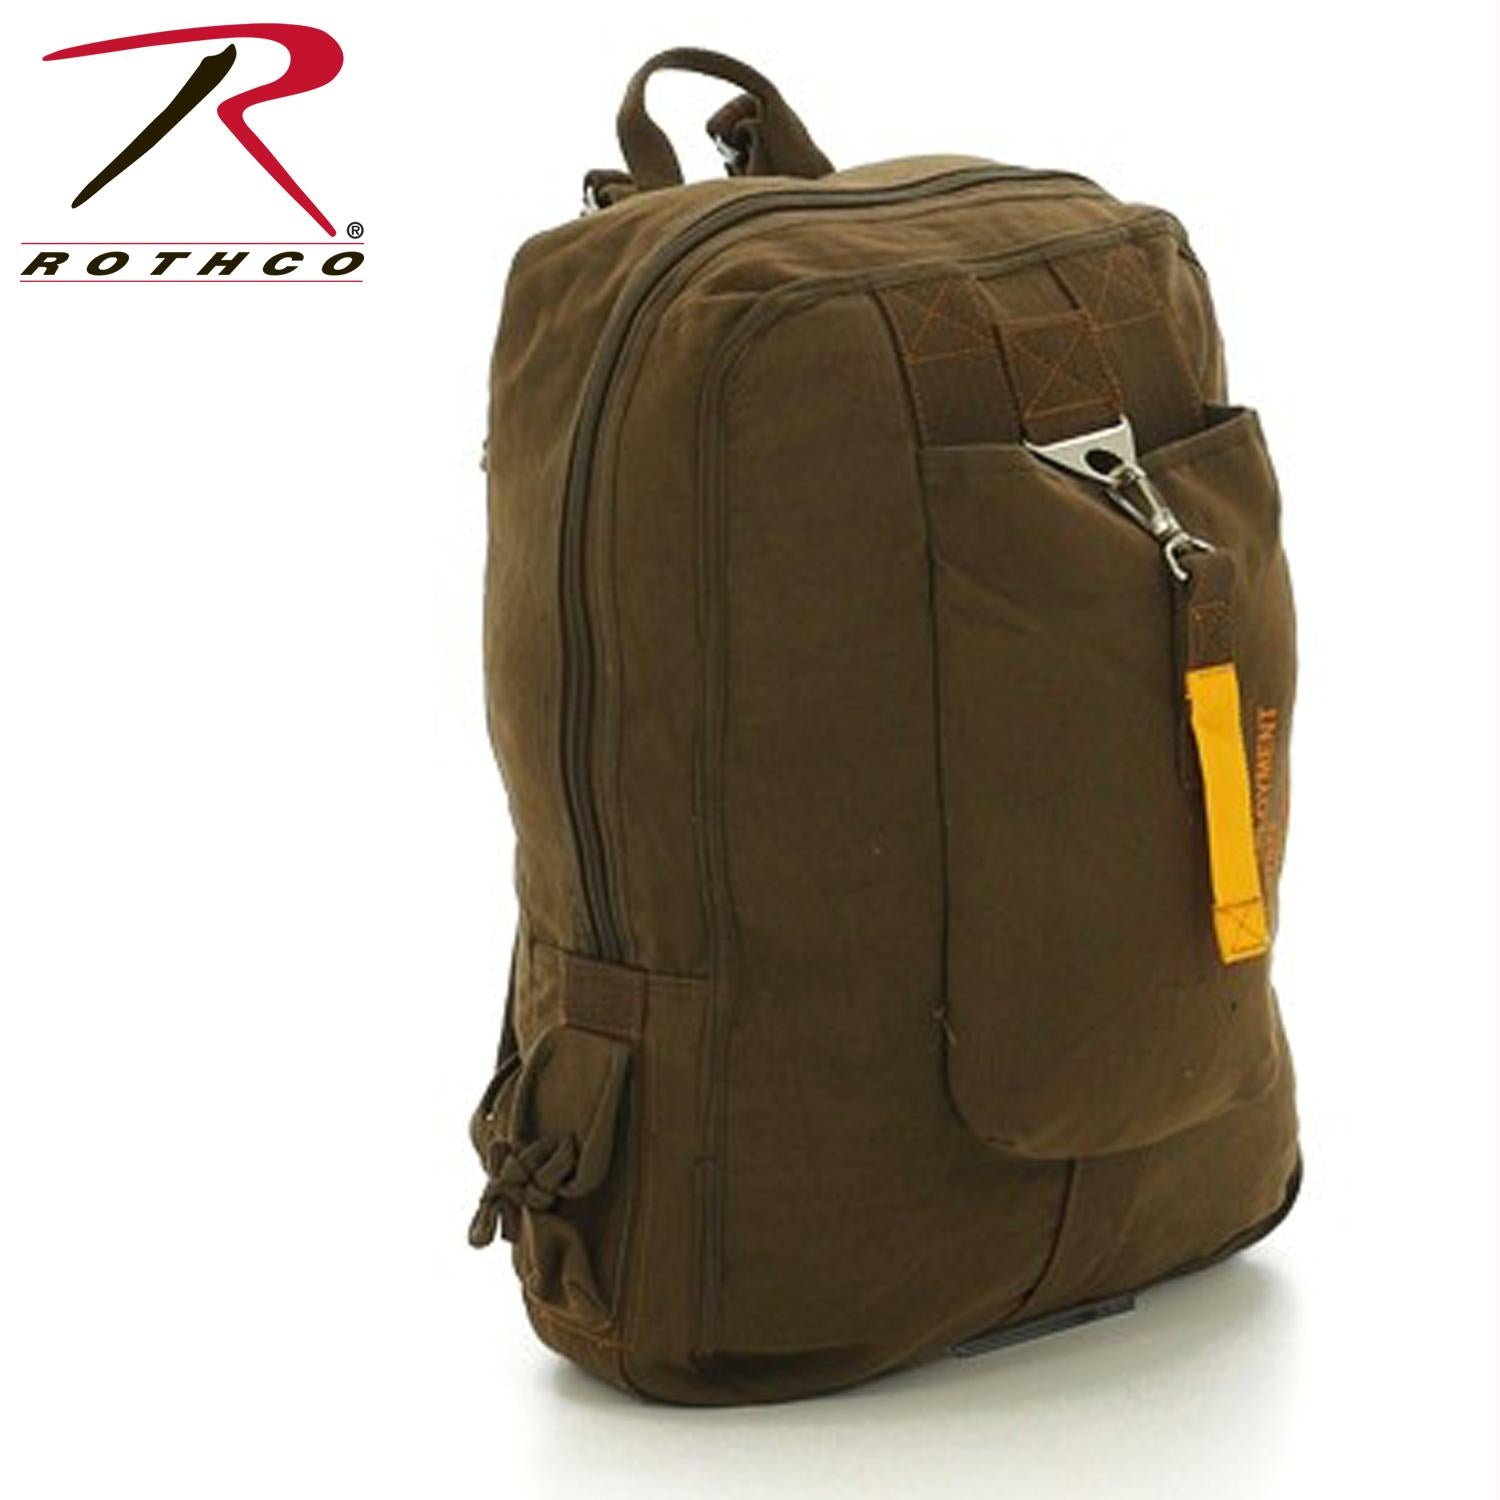 Rothco Vintage Canvas Flight Bag - Brown